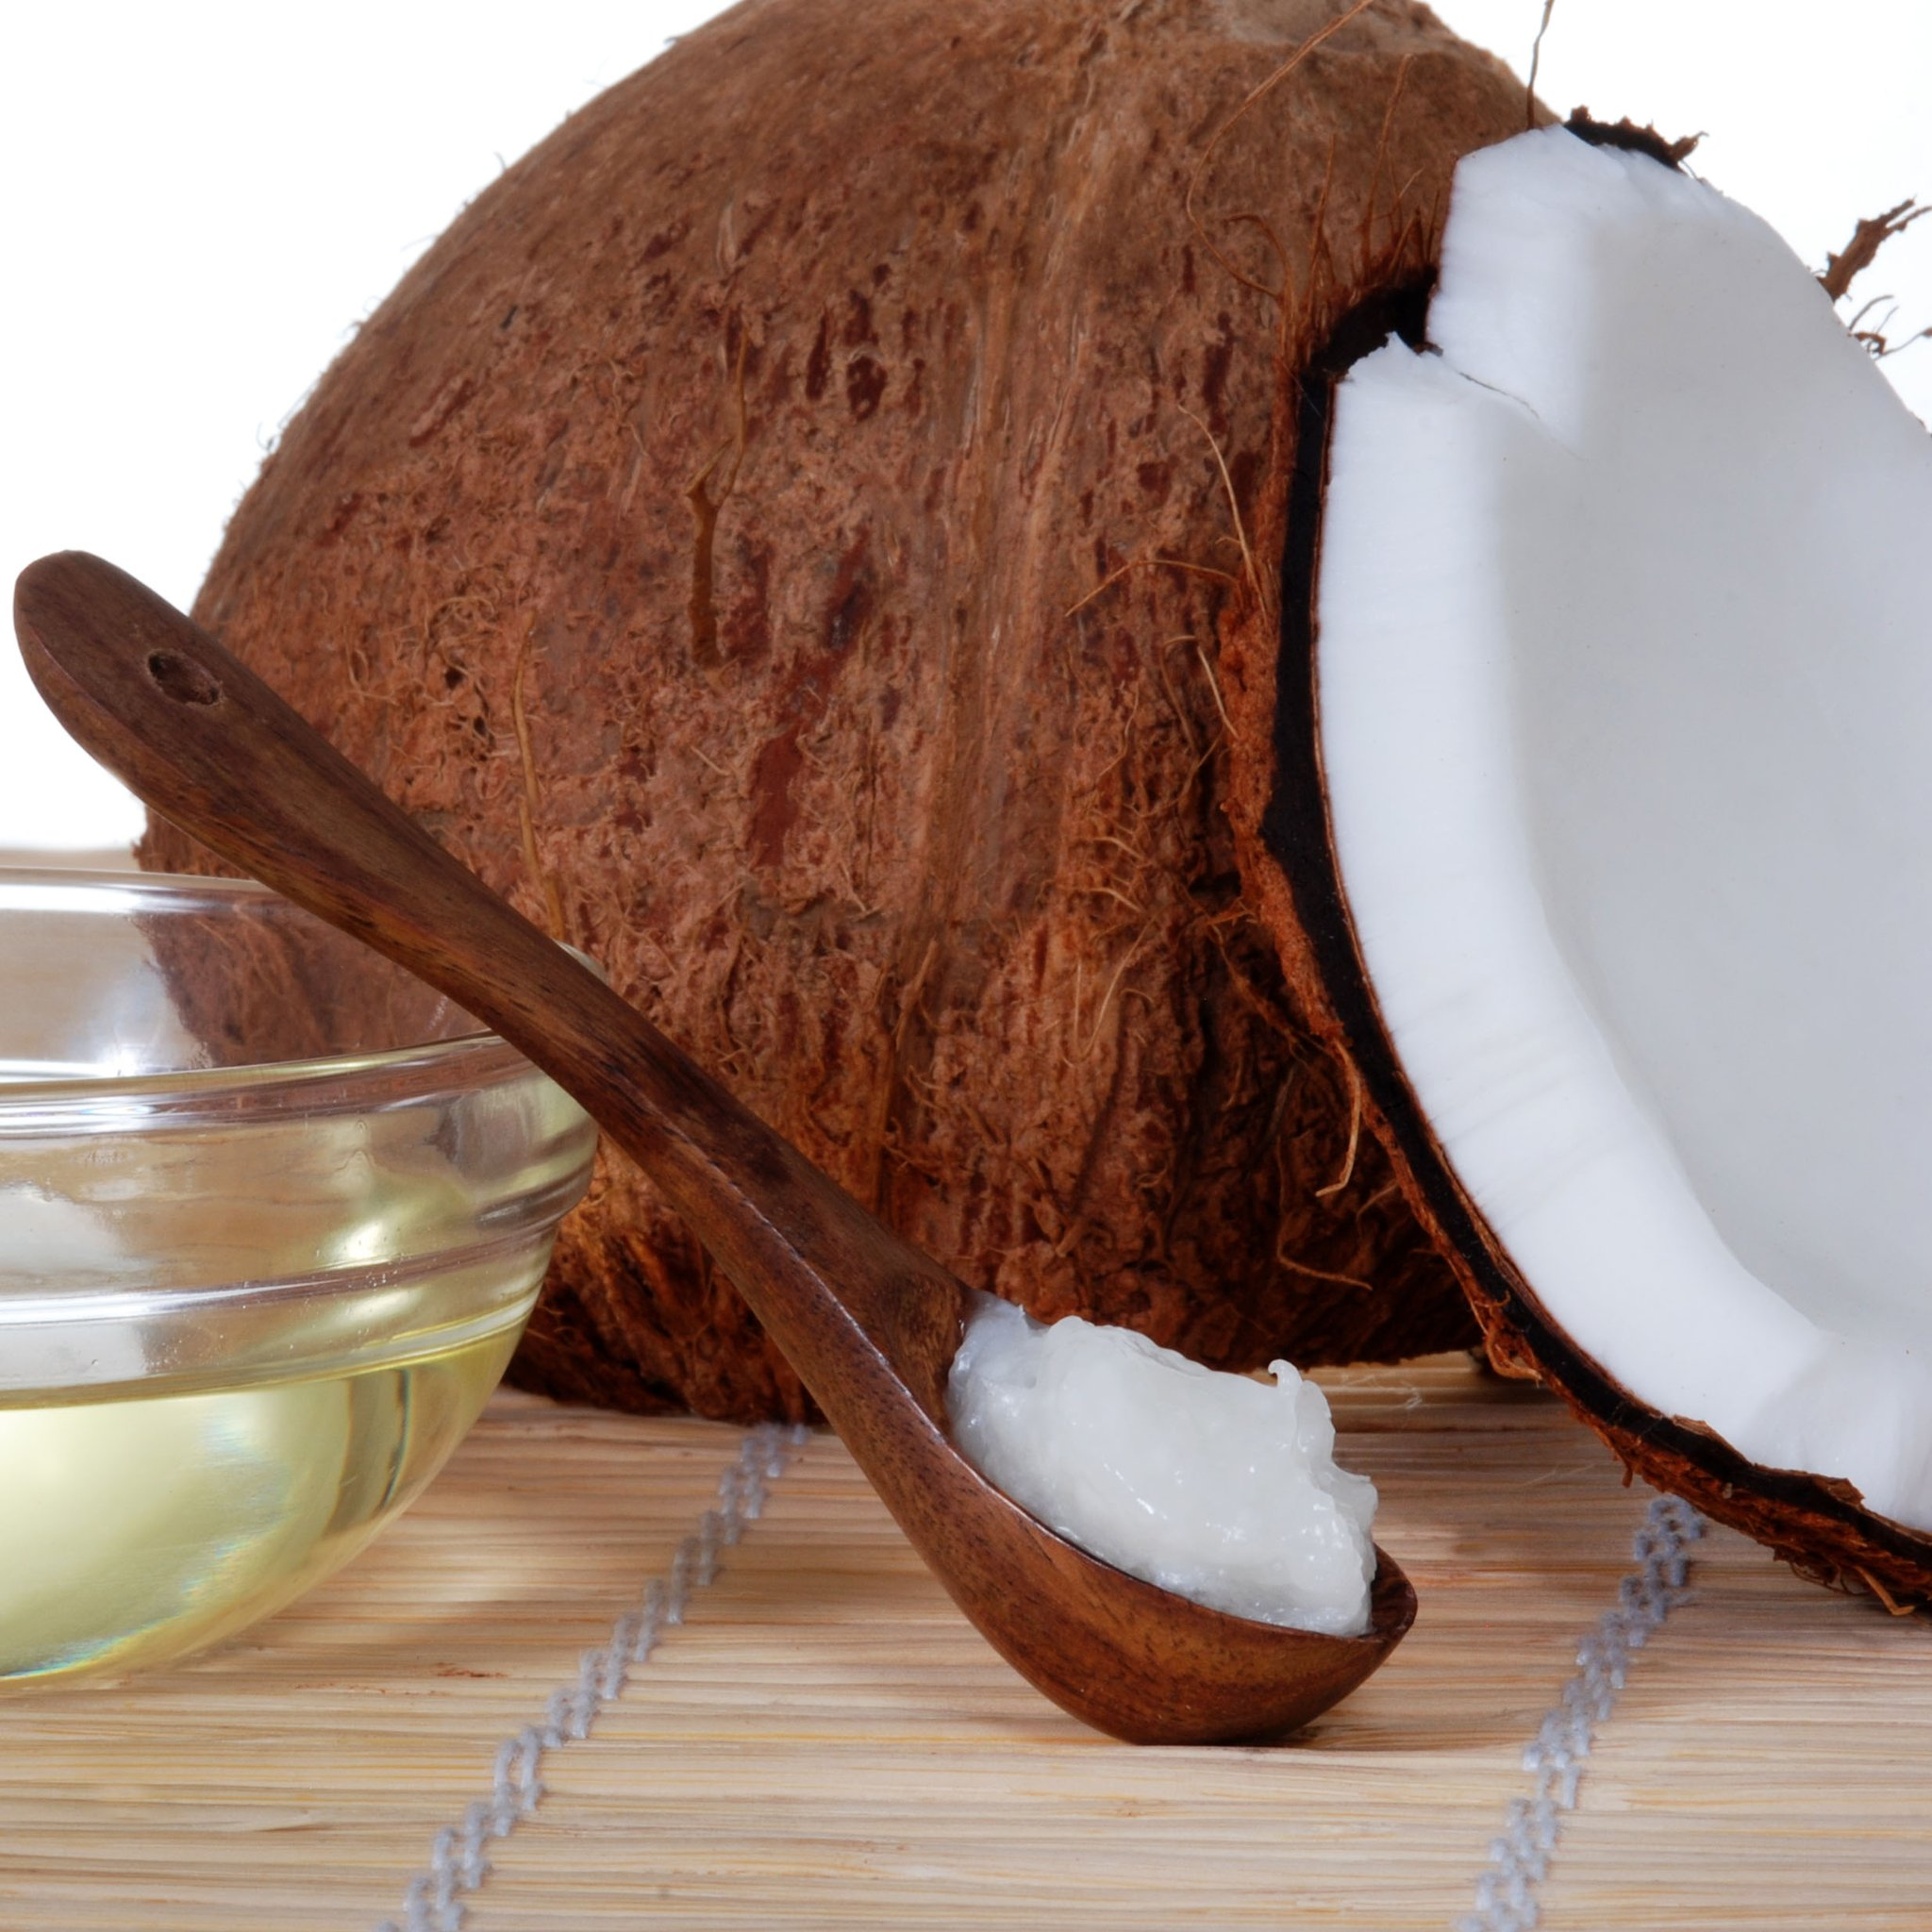 Oil pulling lysa africa